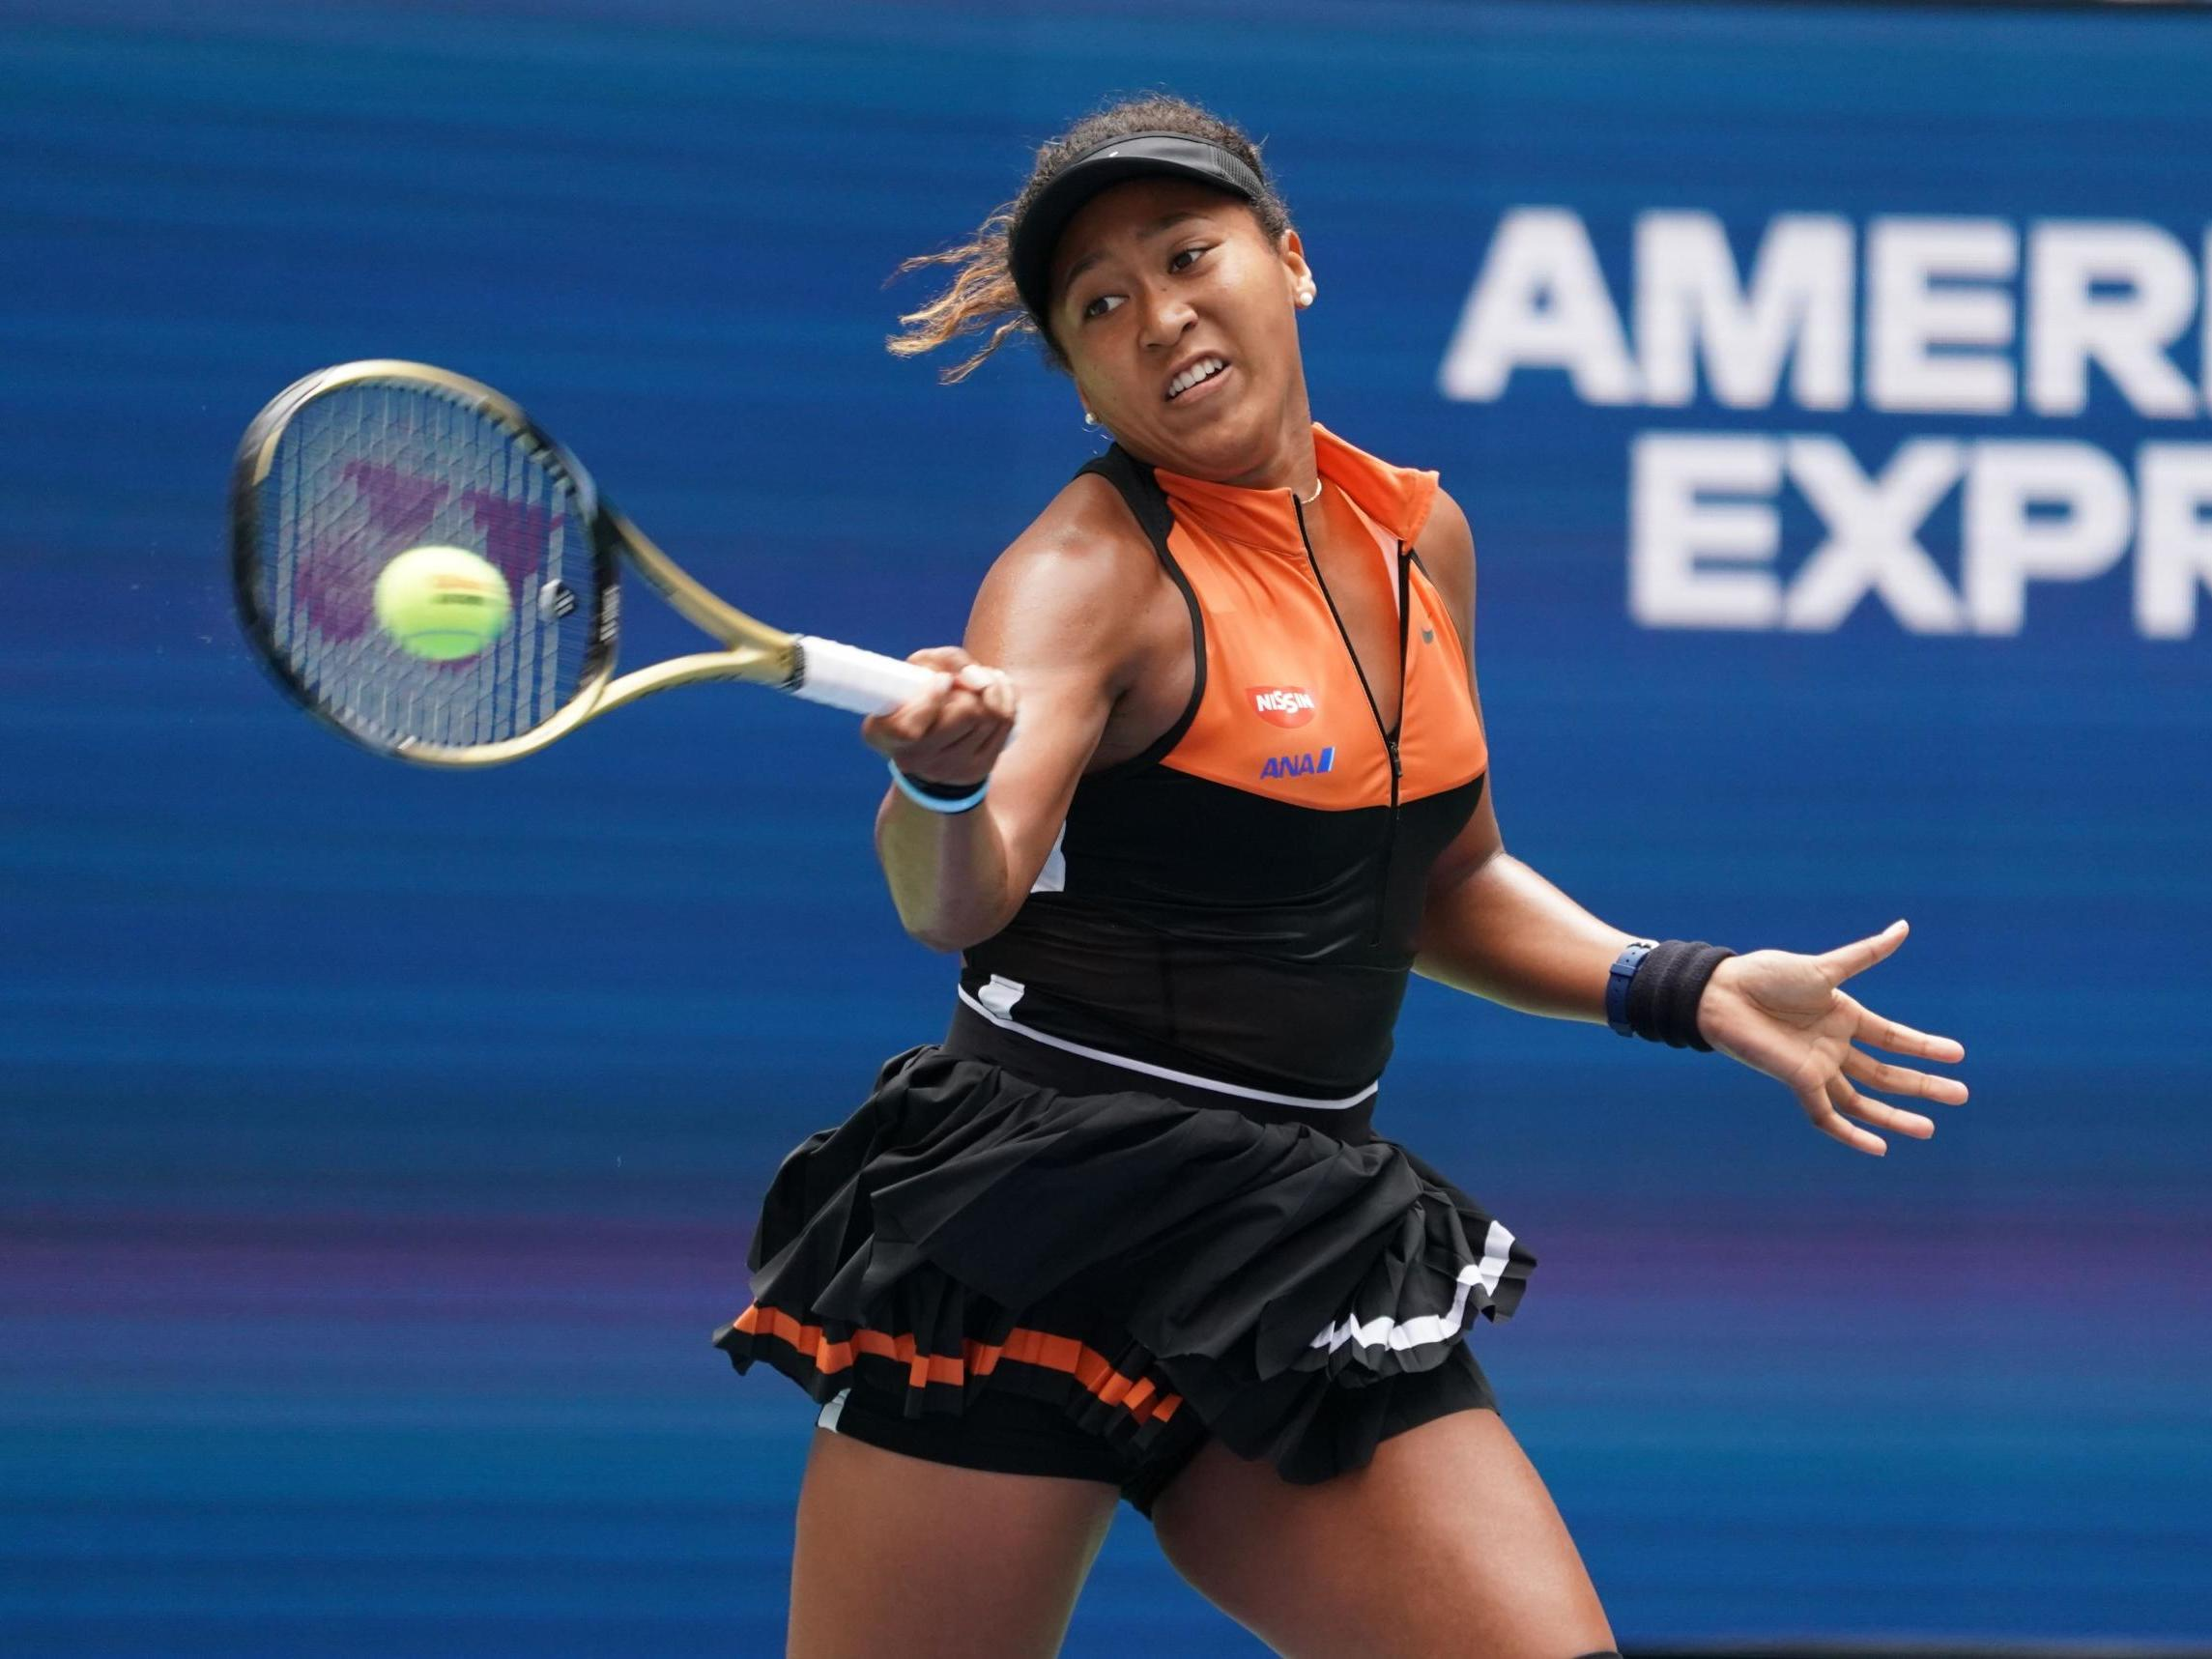 US Open – Thursday order of play: Rafael Nadal, Naomi Osaka and Cori Gauff all in action on day four